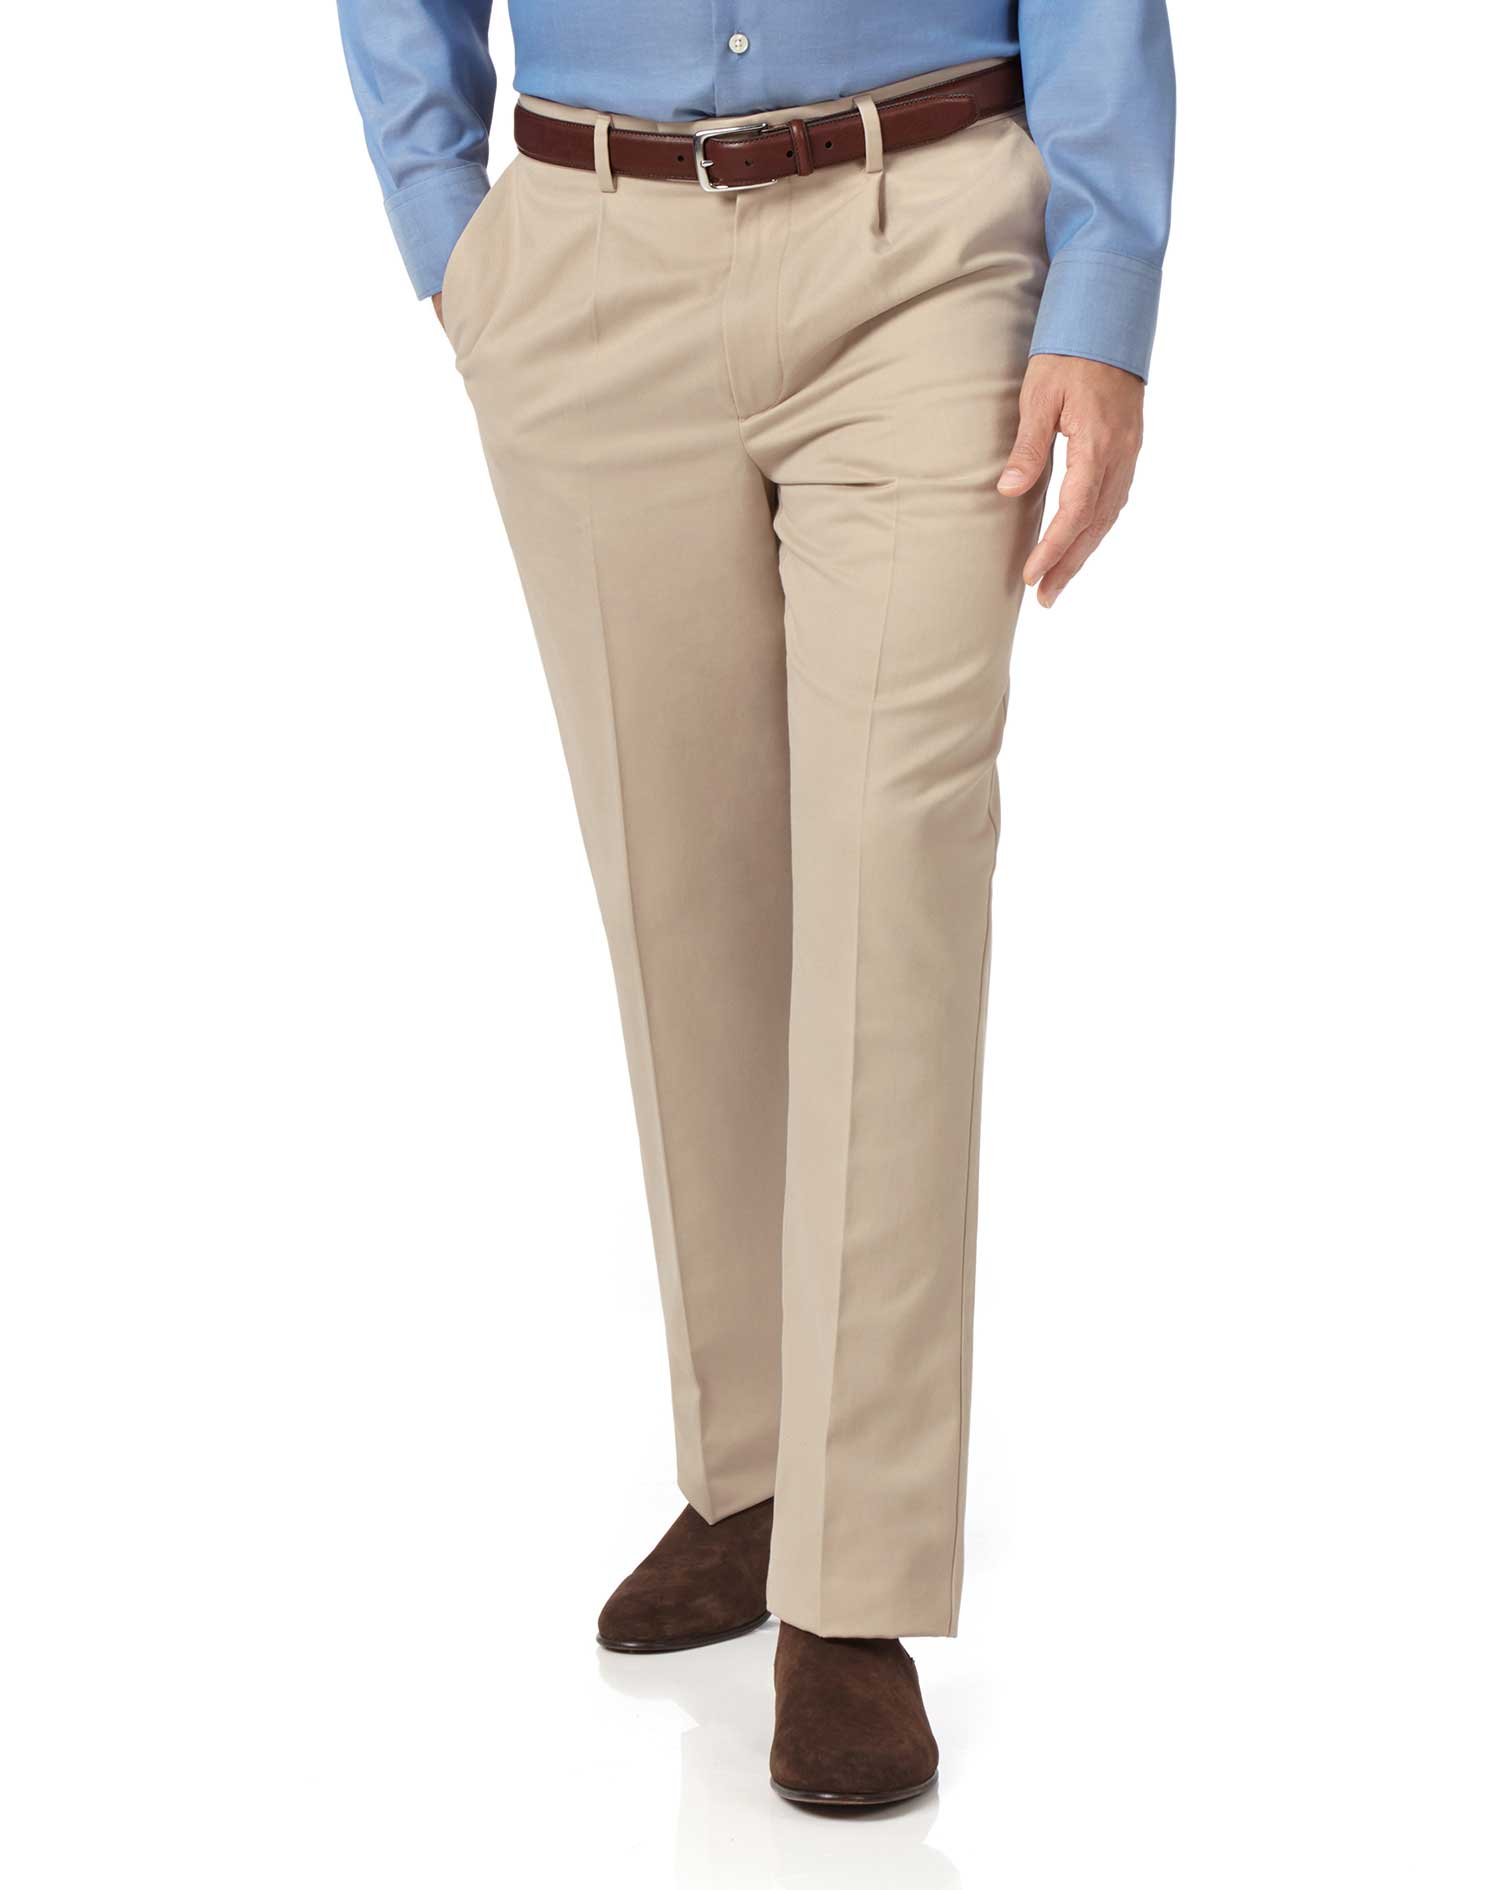 Stone Classic Fit Single Pleat Non-Iron Cotton Chino Trousers Size W36 L38 by Charles Tyrwhitt